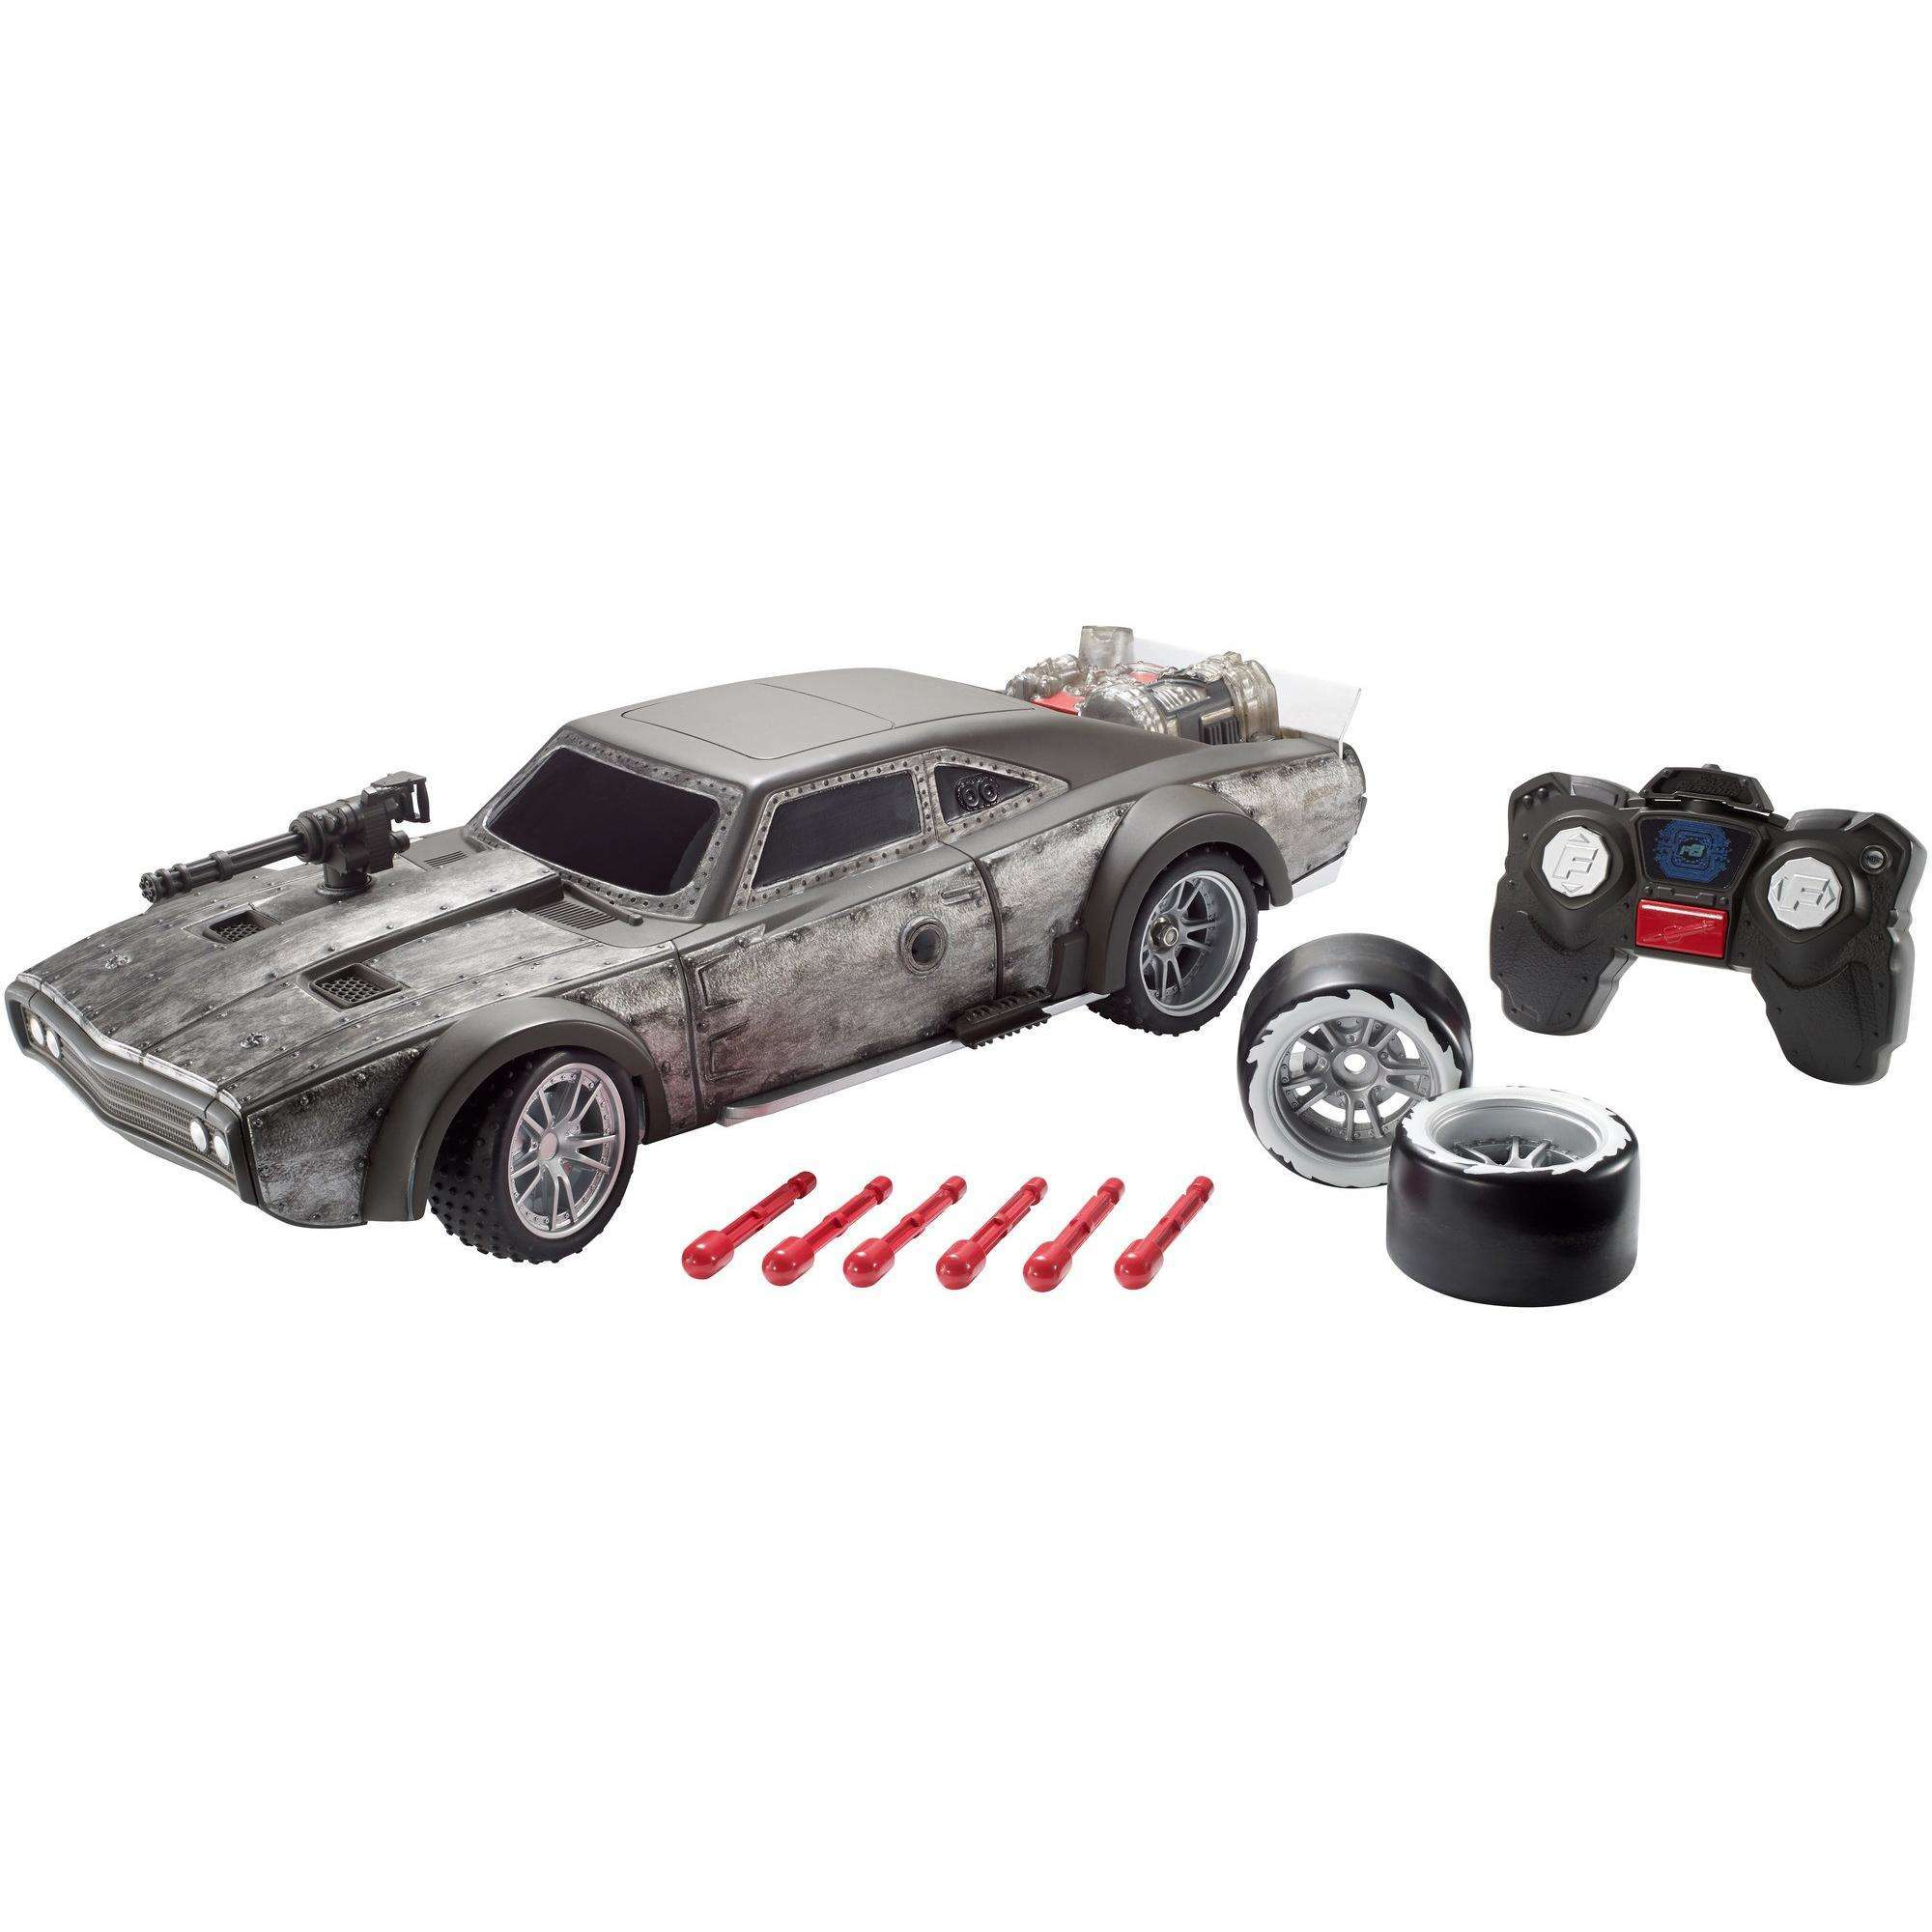 Fast & Furious Dom's Blast & Burn RC Dodge Ice Charger Vehicle